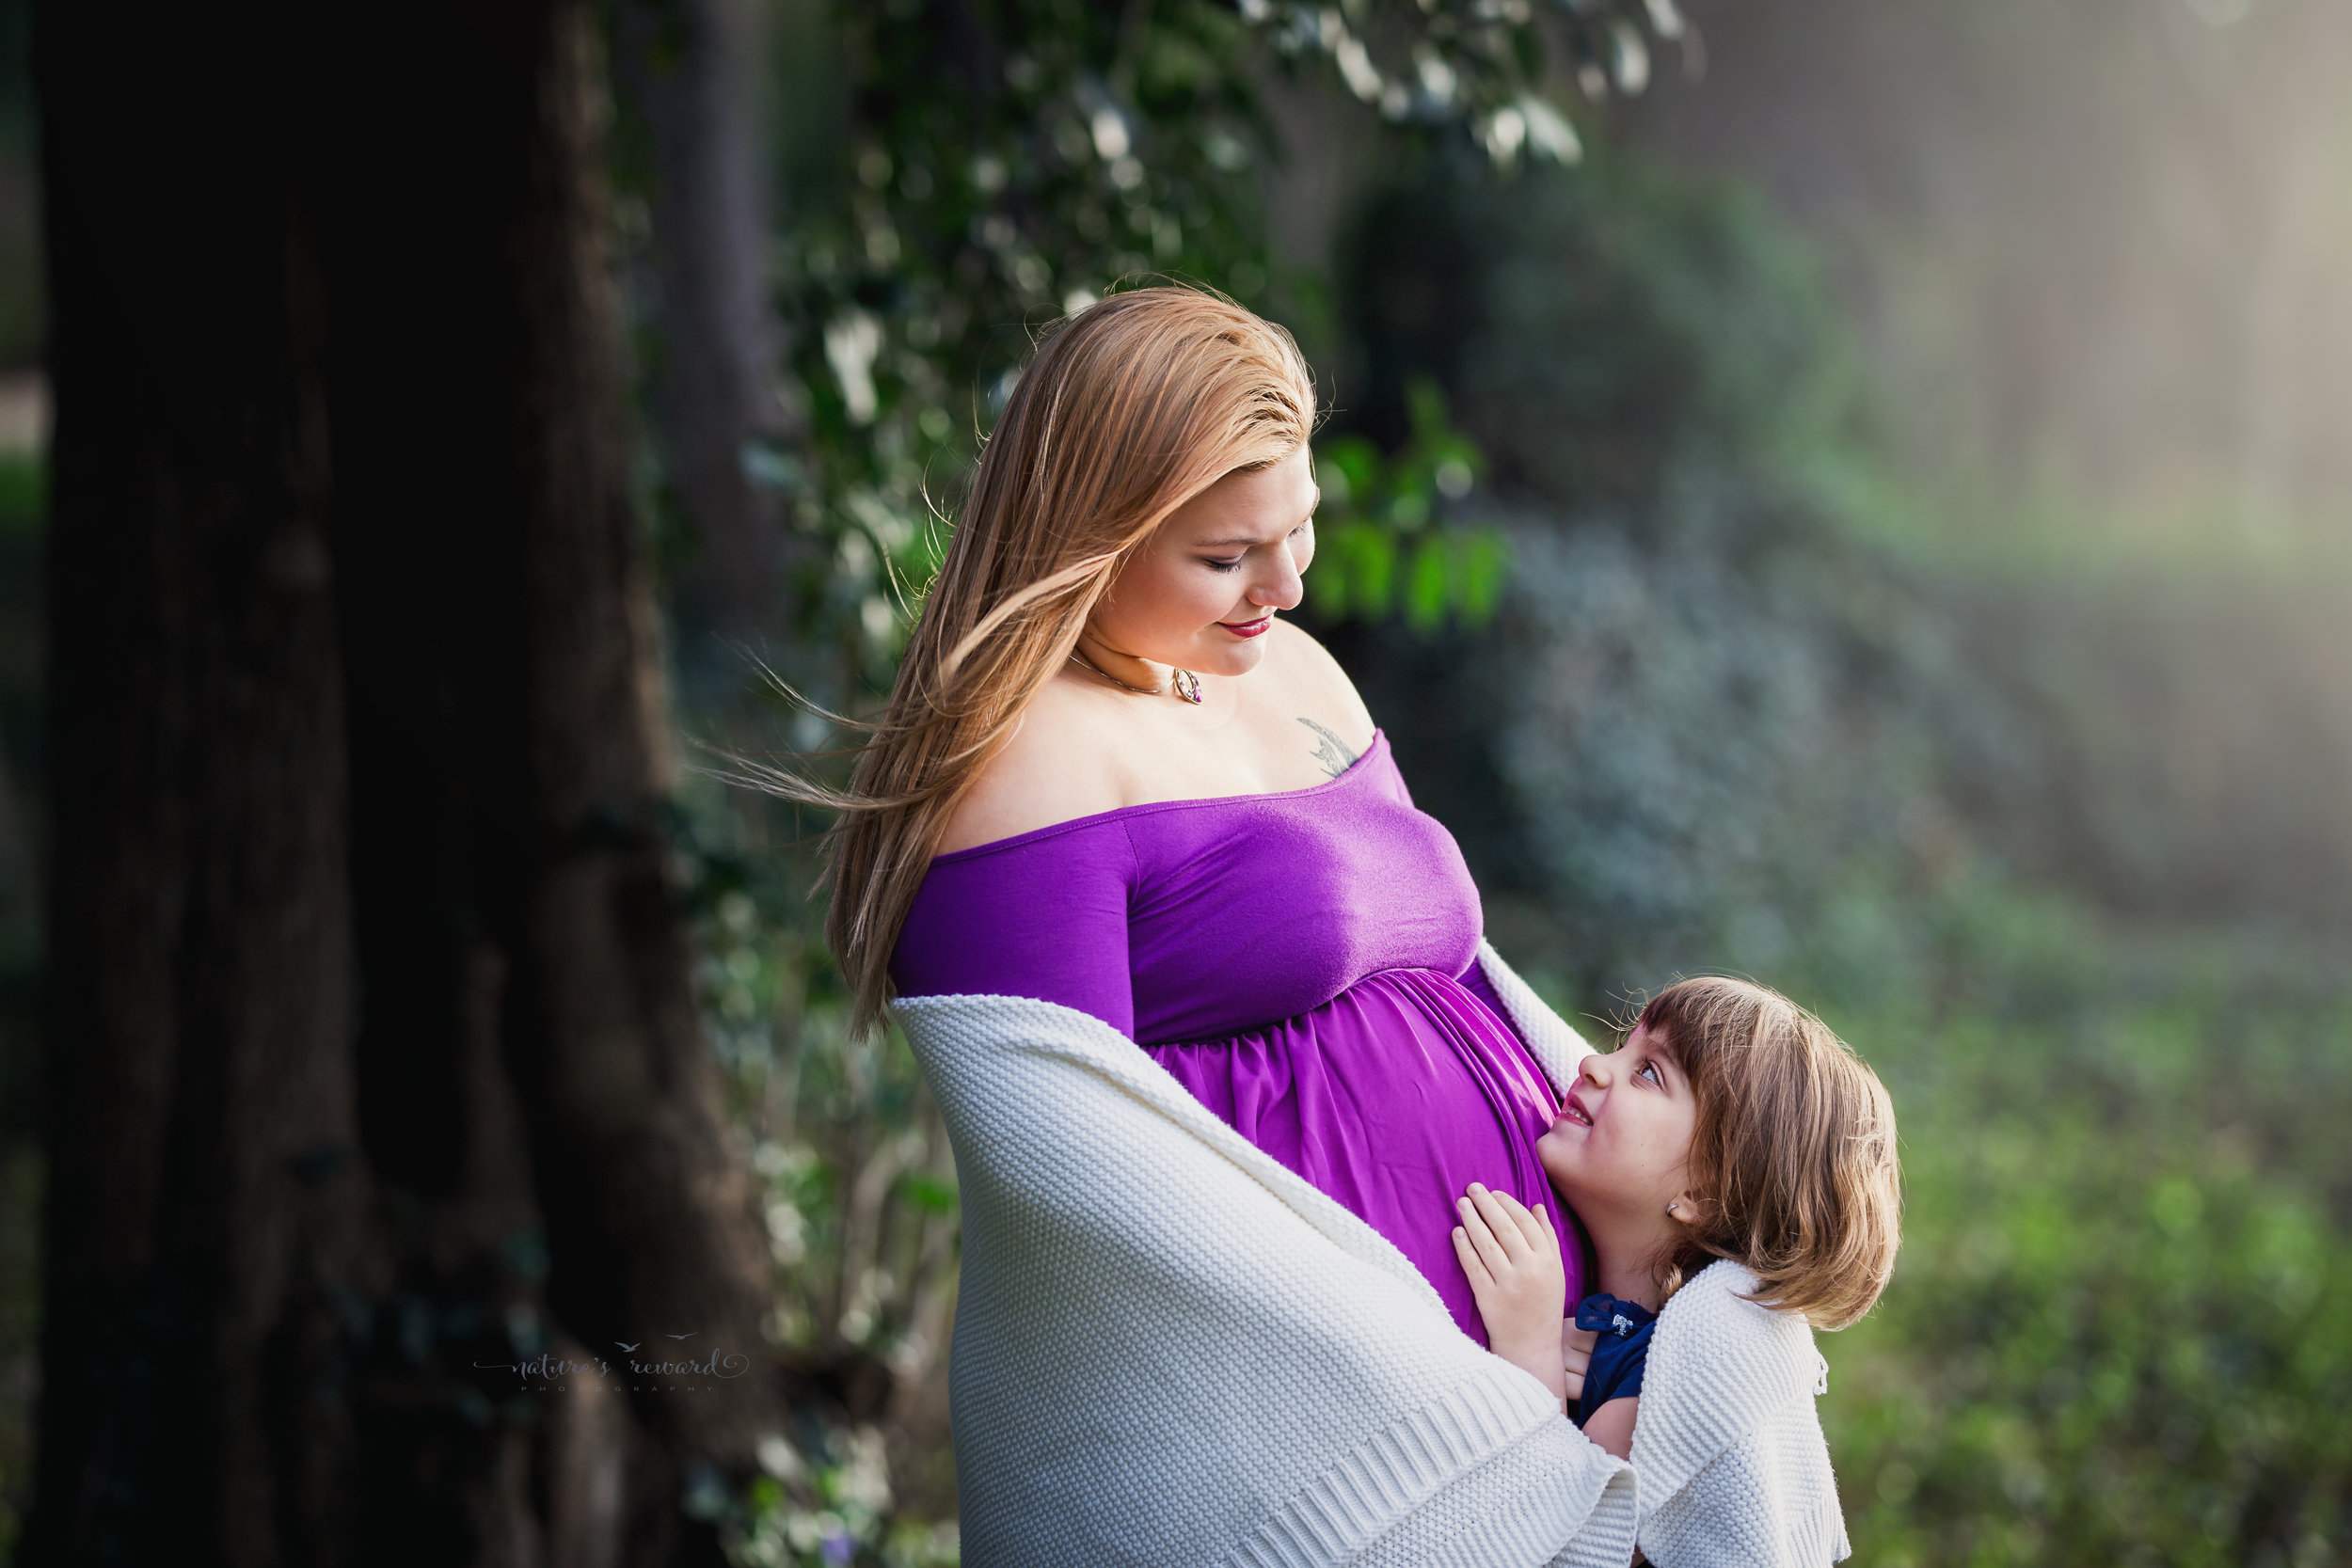 Maternity portrait of this beautiful expecting mother in a open front purple maternity gown and a beautiful lush park with cherry blossoms and her daughter in this portrait by San Bernardino based photographer Nature's Reward Photography.